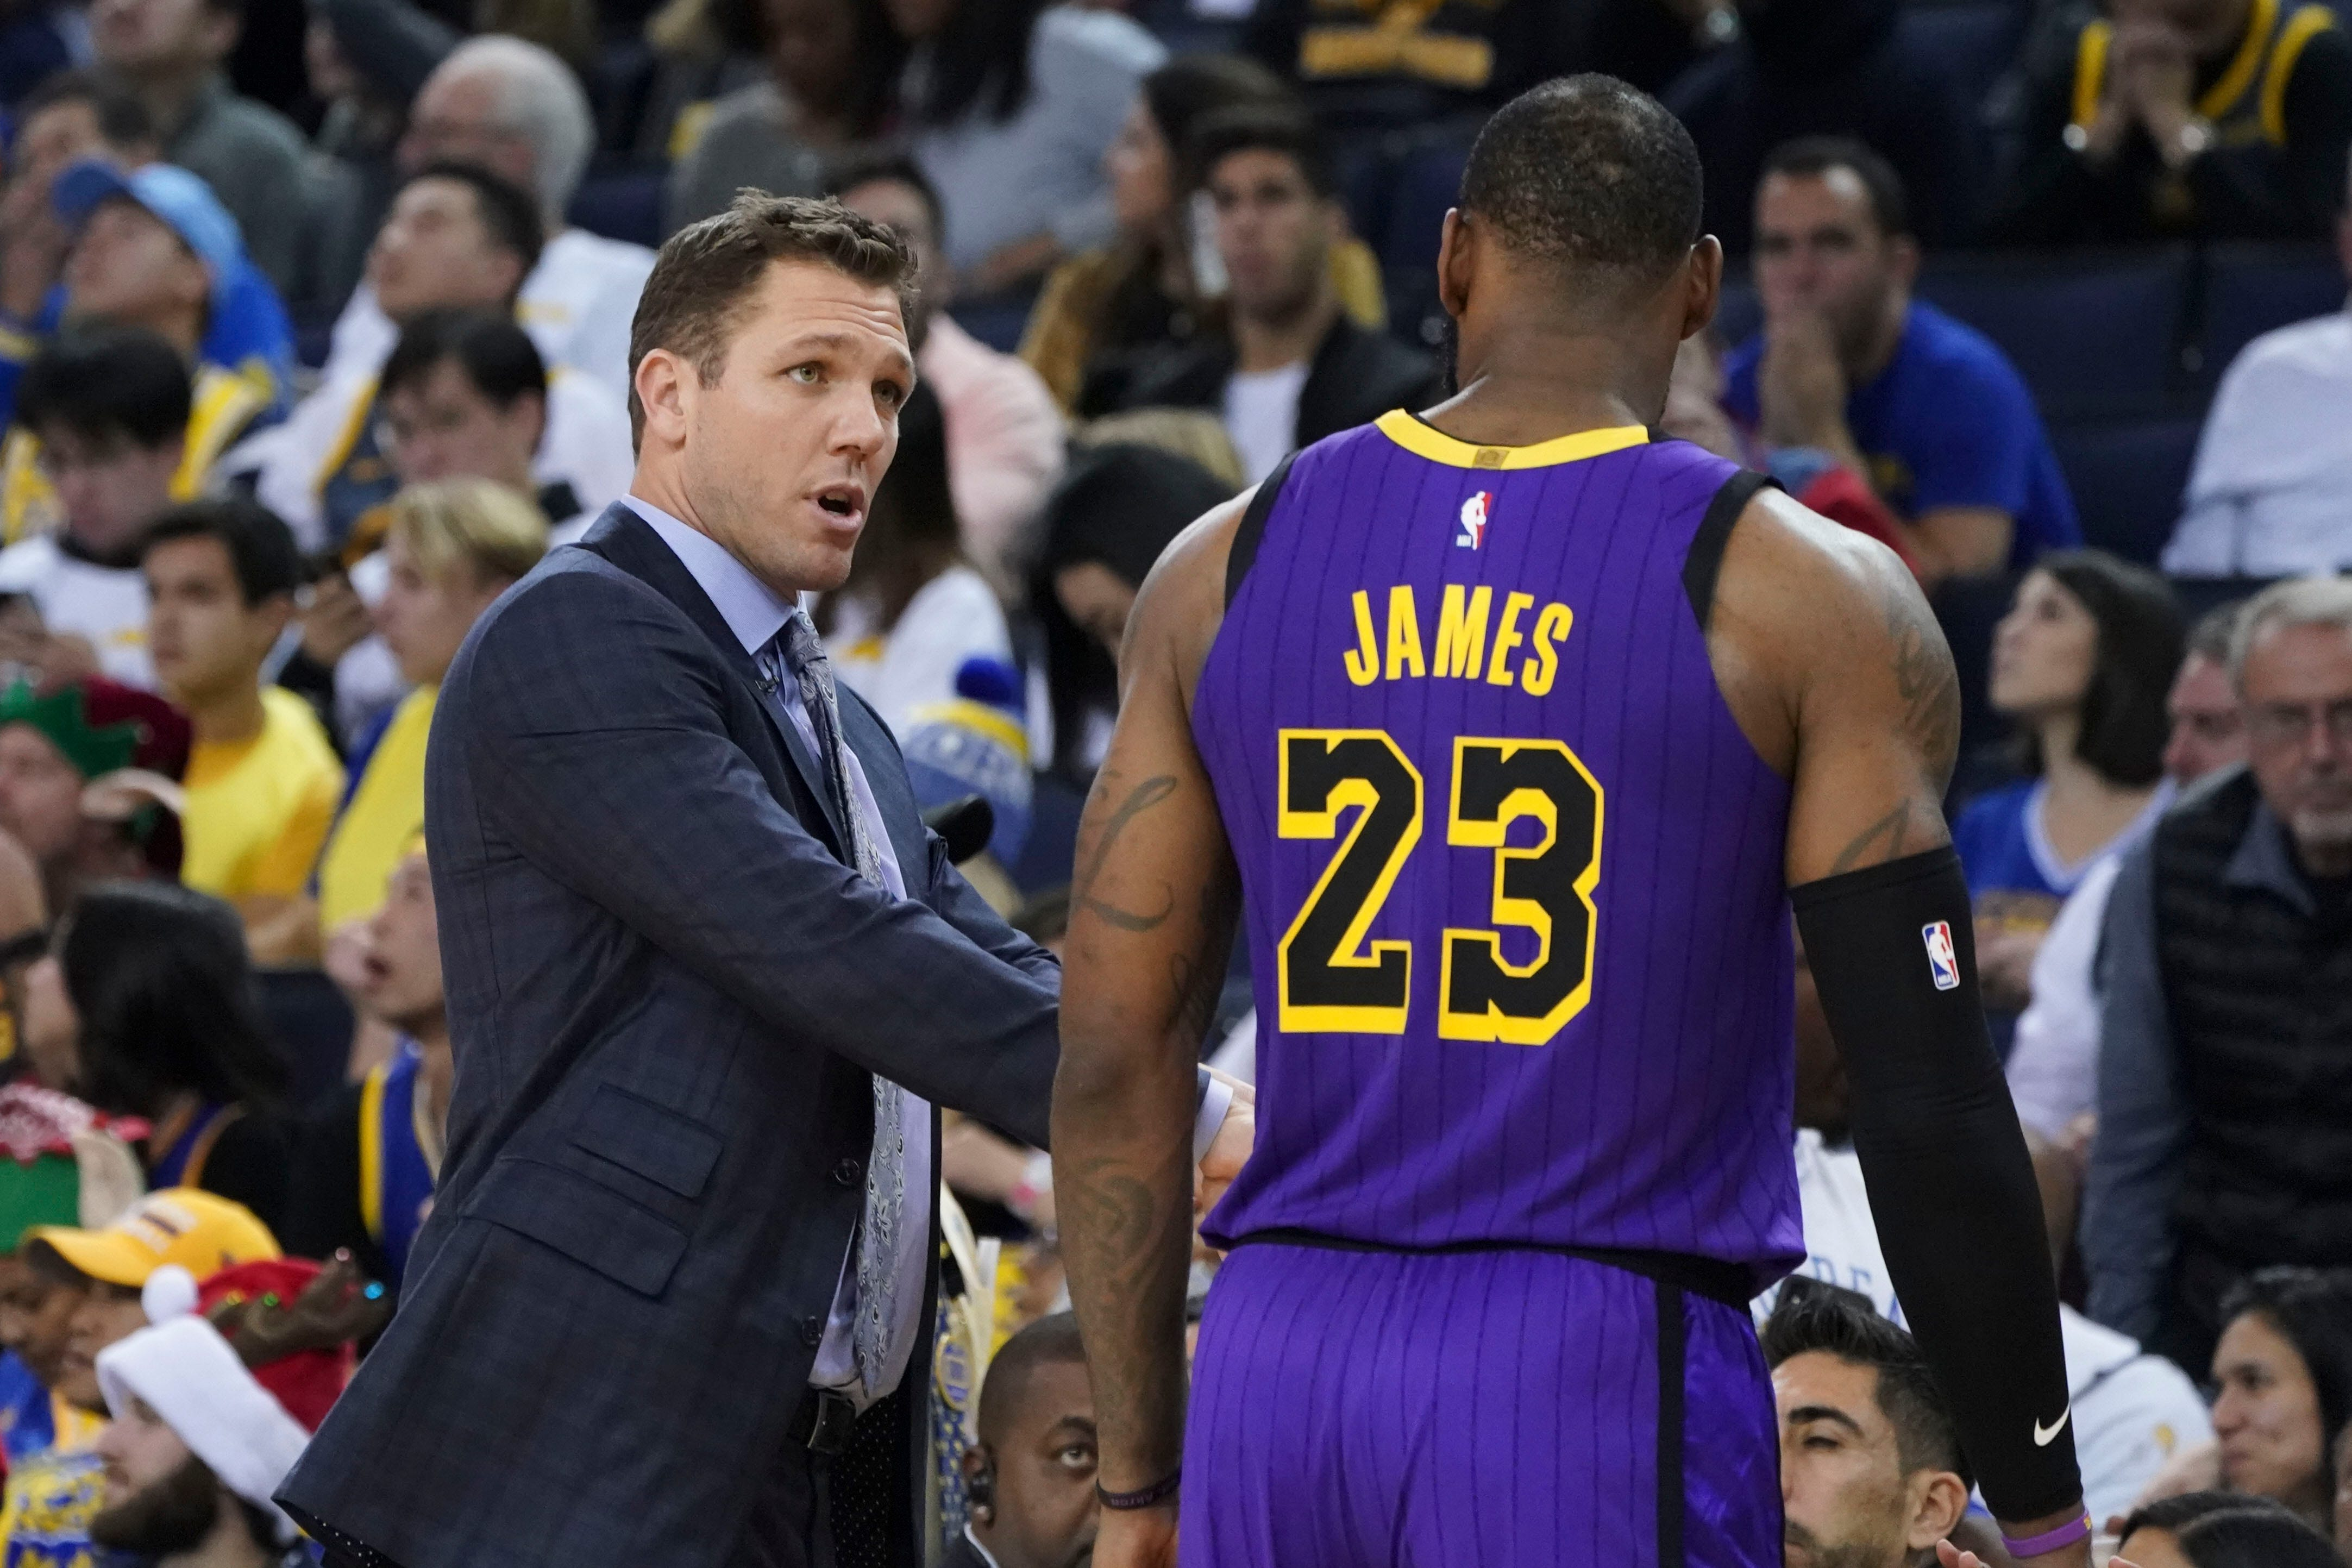 Opinion: In post-Luke Walton era, Lakers must first fix themselves